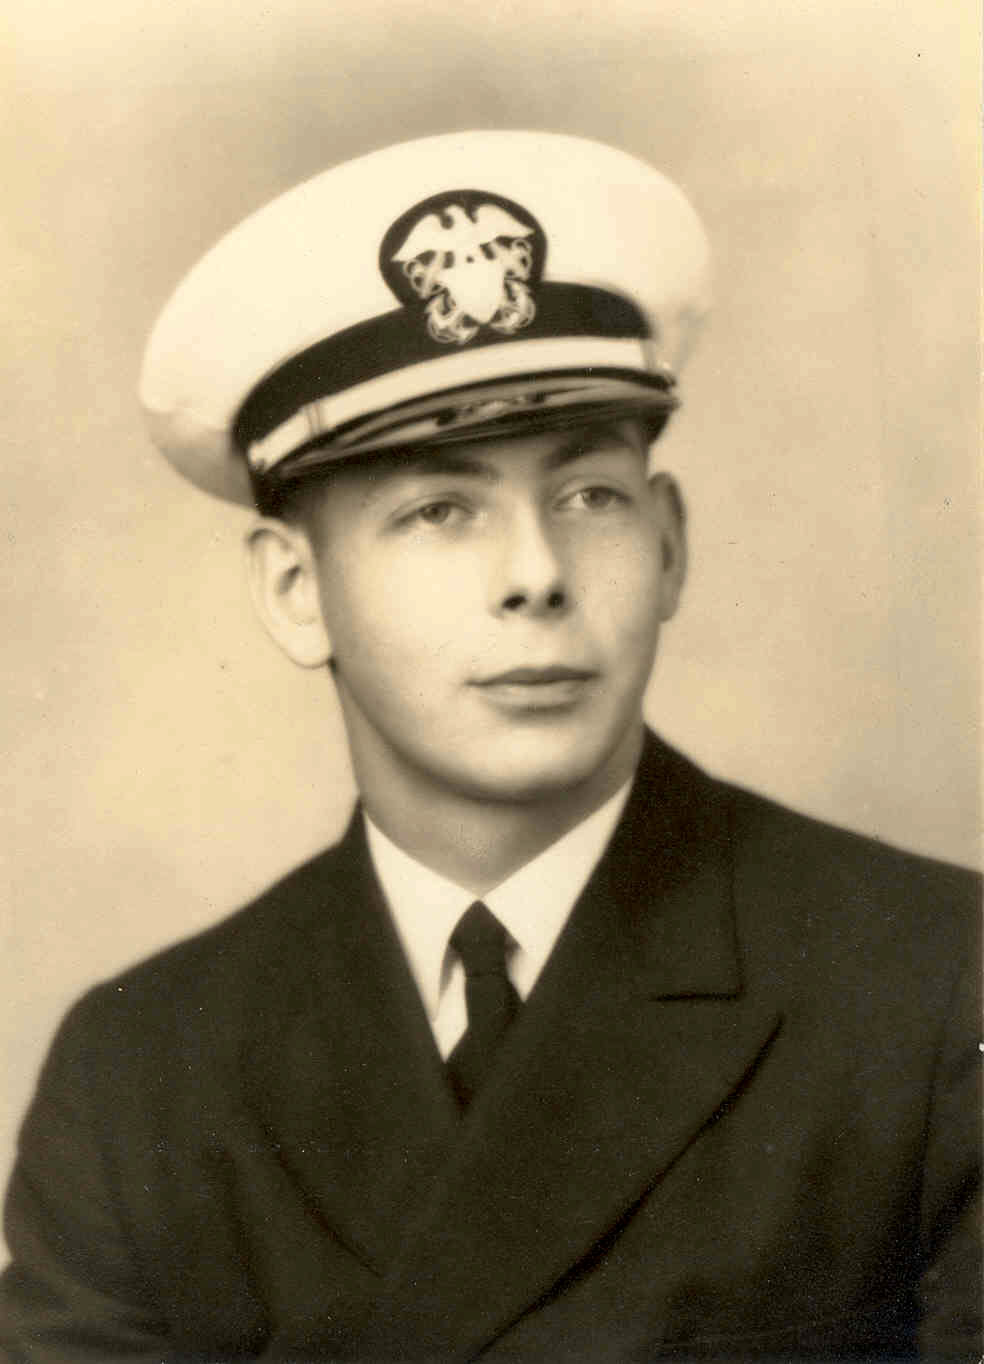 Following his graduation at Yale University in 1944, Edward attended the Annapolis Naval Academy.